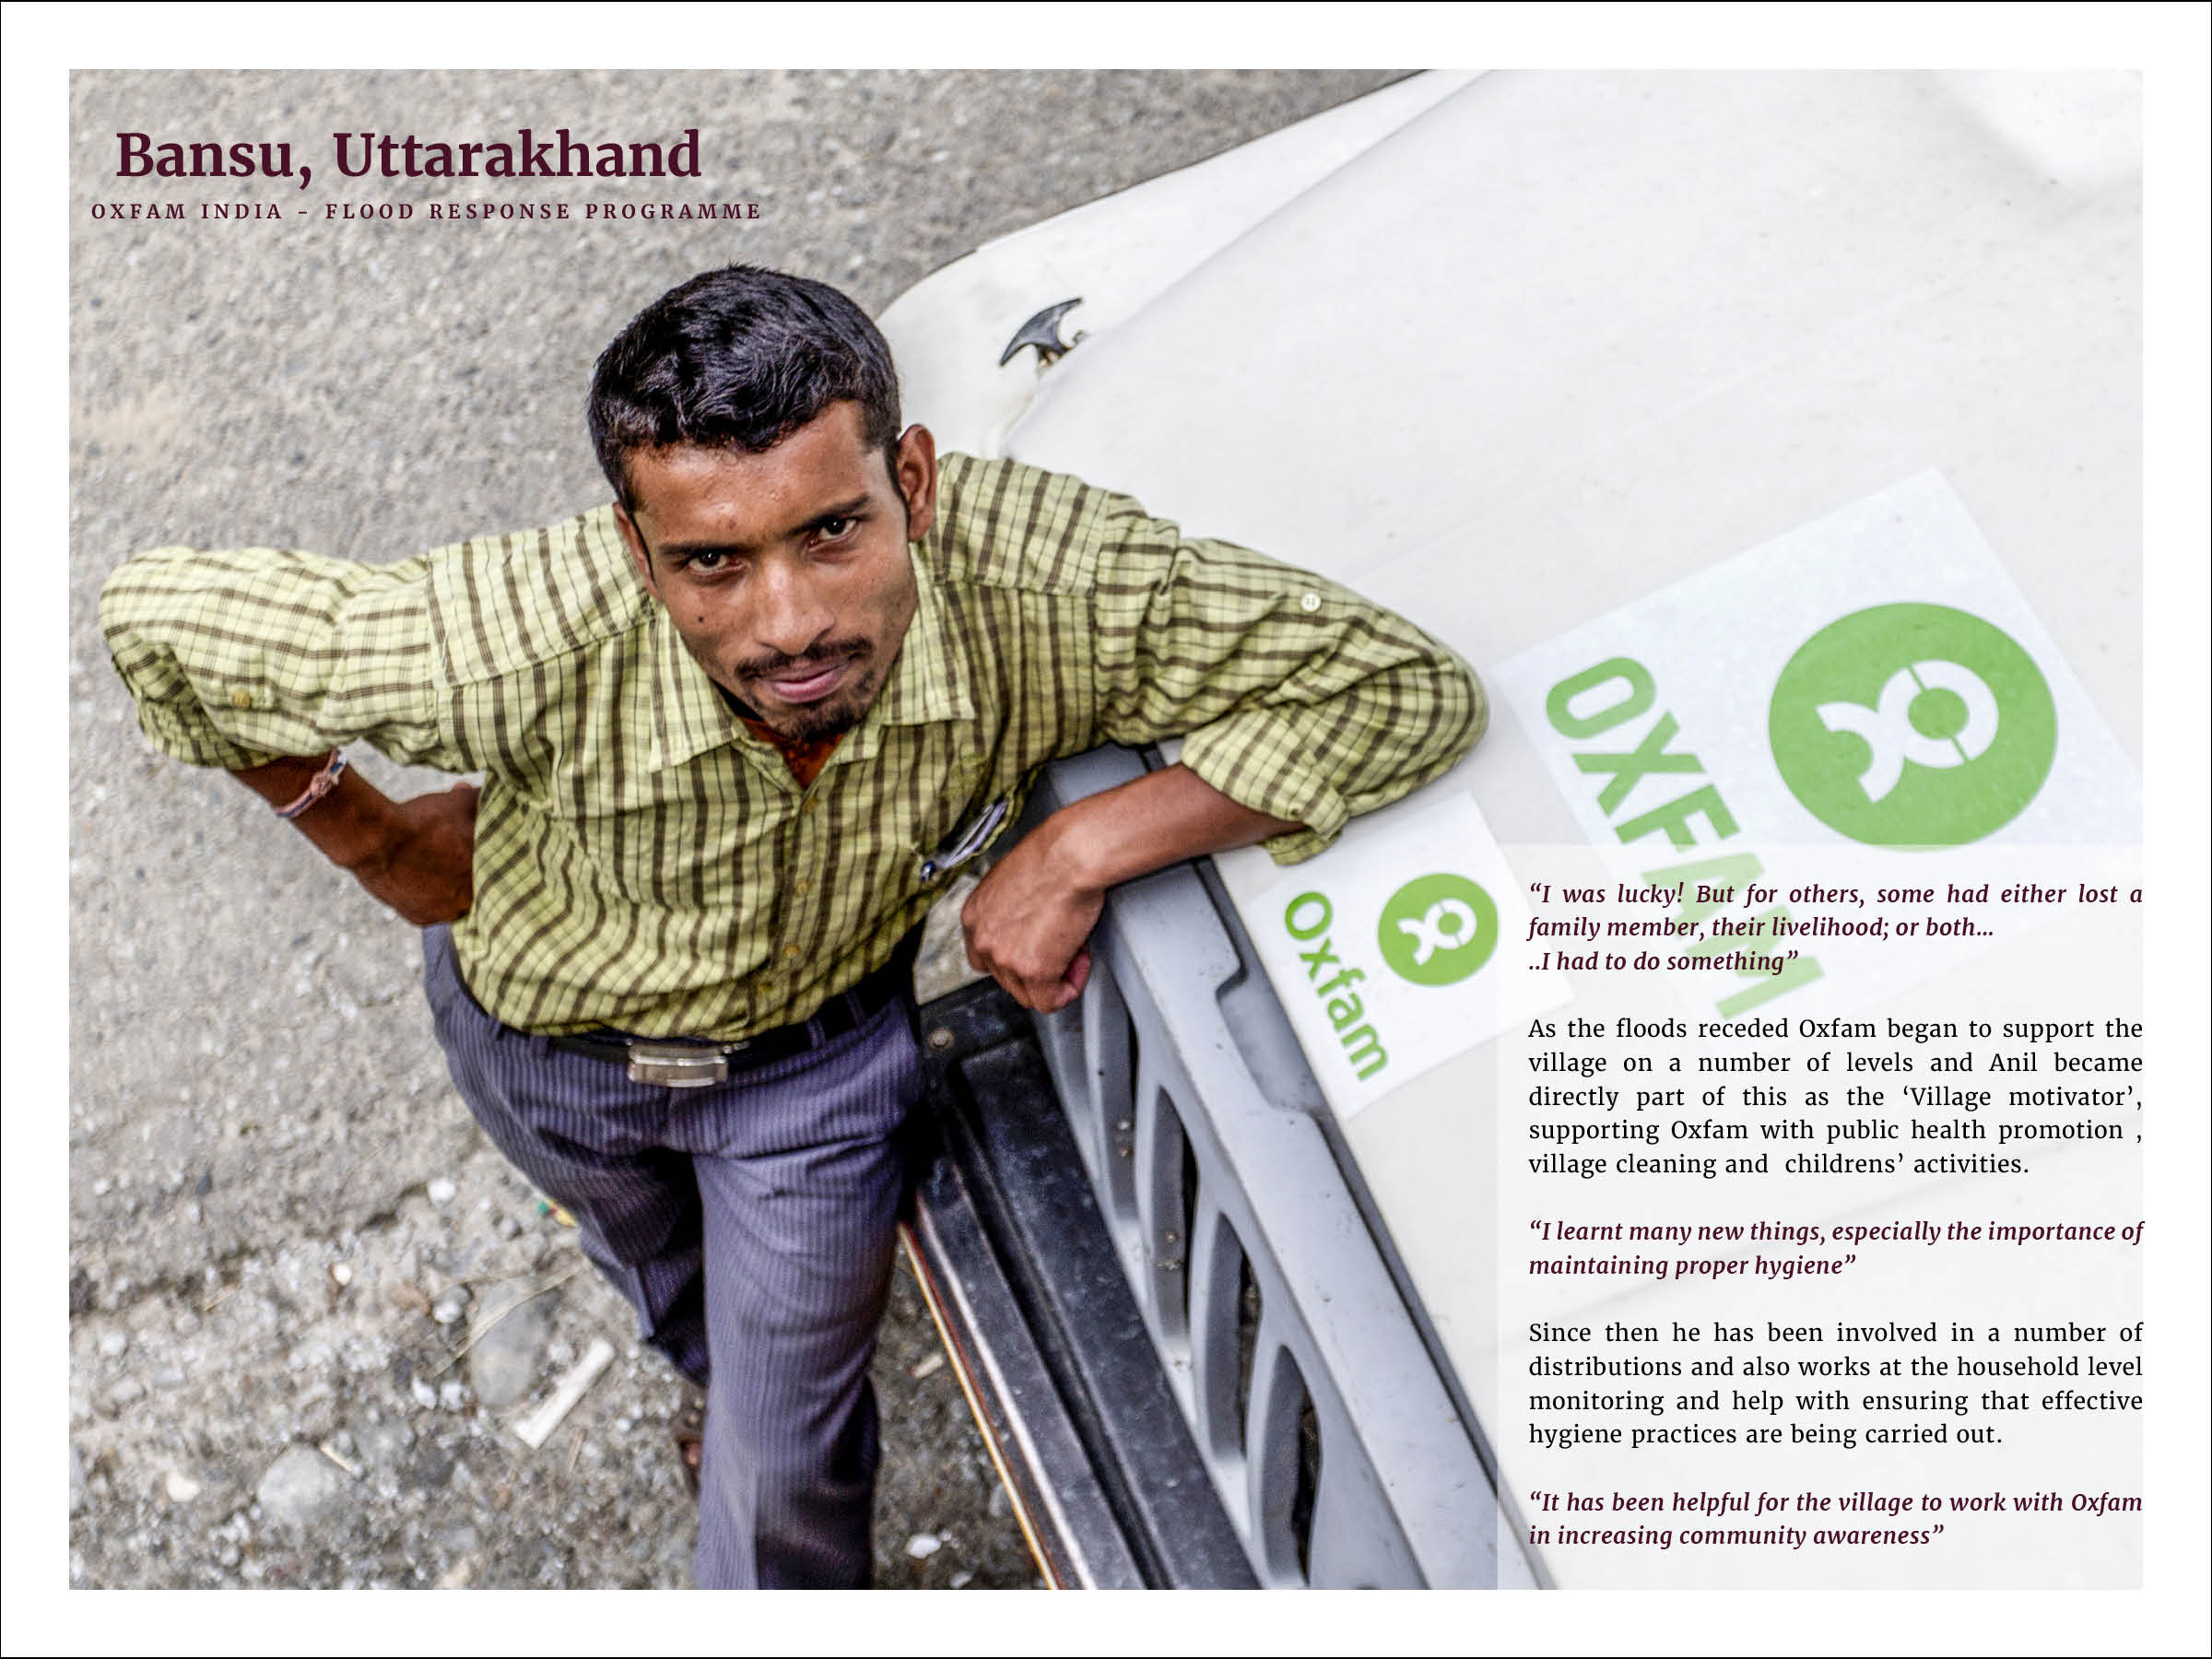 Public Health Volunteer - Anil Chandra   Oxfam India - Uttarakhand Cloud Burst and Flood Response Programme